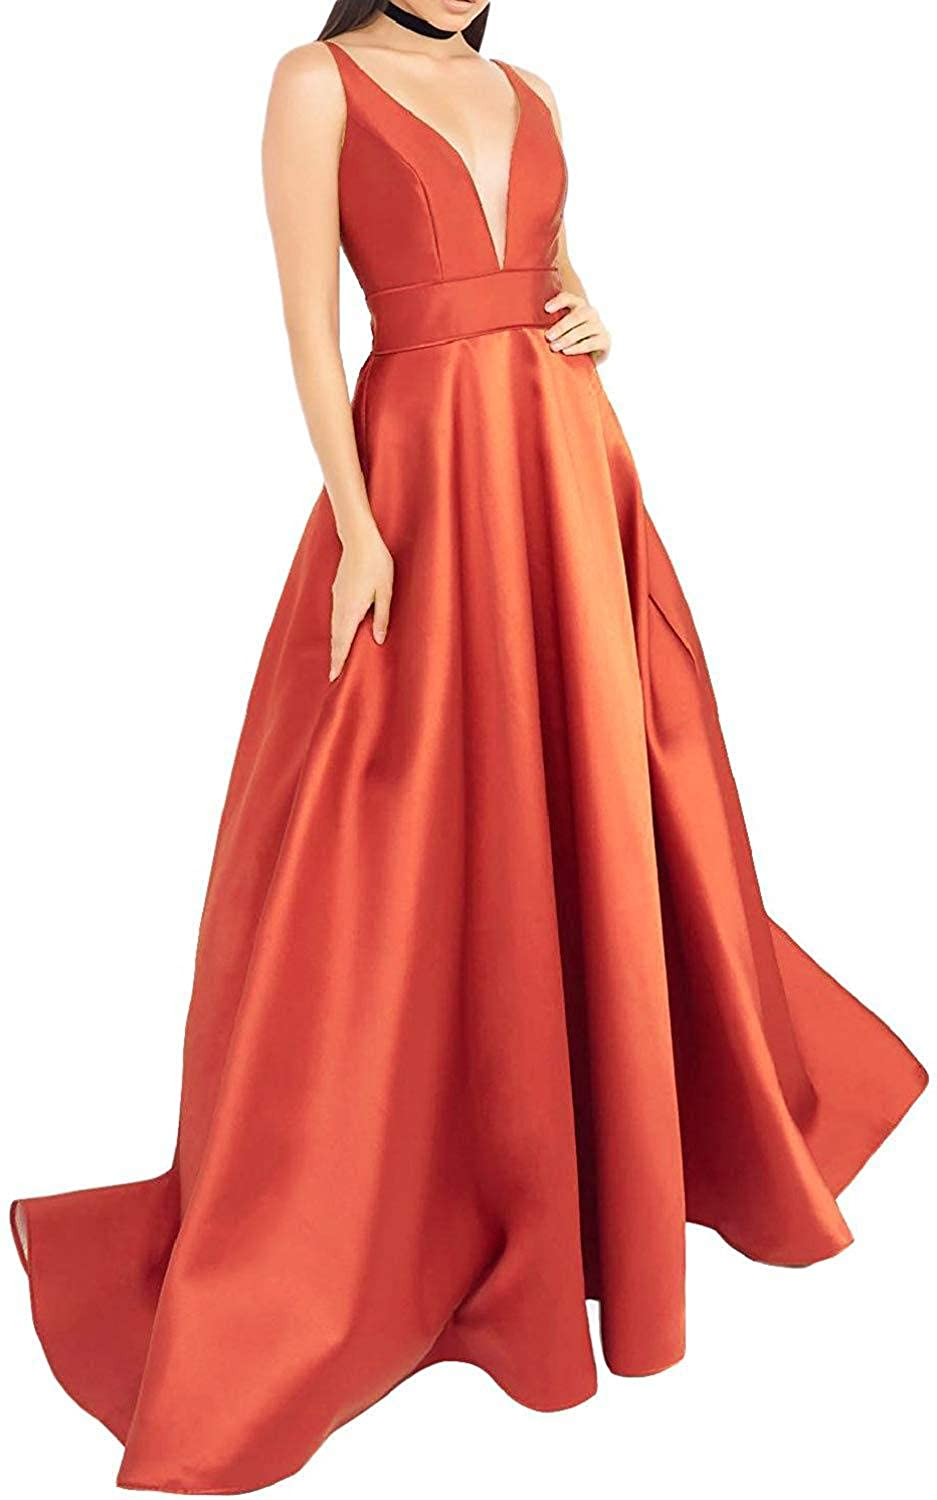 orange EverBeauty Womens VNeck Satin Prom Dresses 2019 Long Sleeveless Aline Evening Formal Ball Gown with Pockets